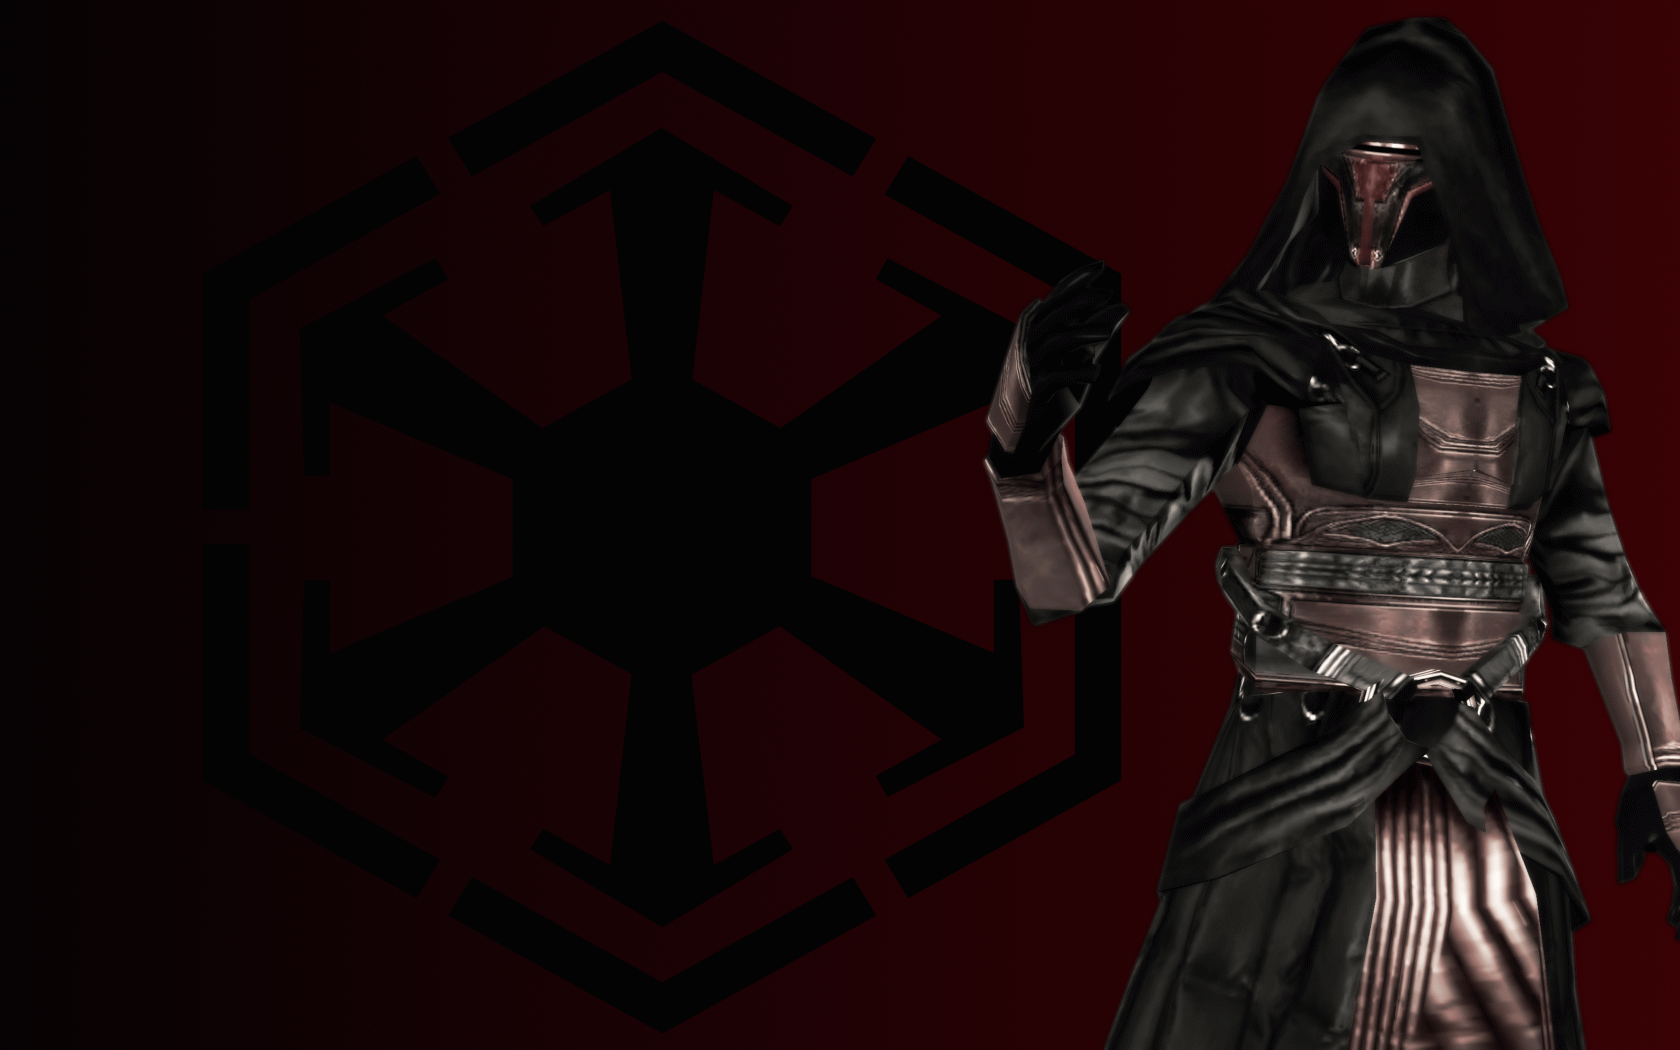 Free Download Darth Revan Wallpapers 5333x3000 For Your